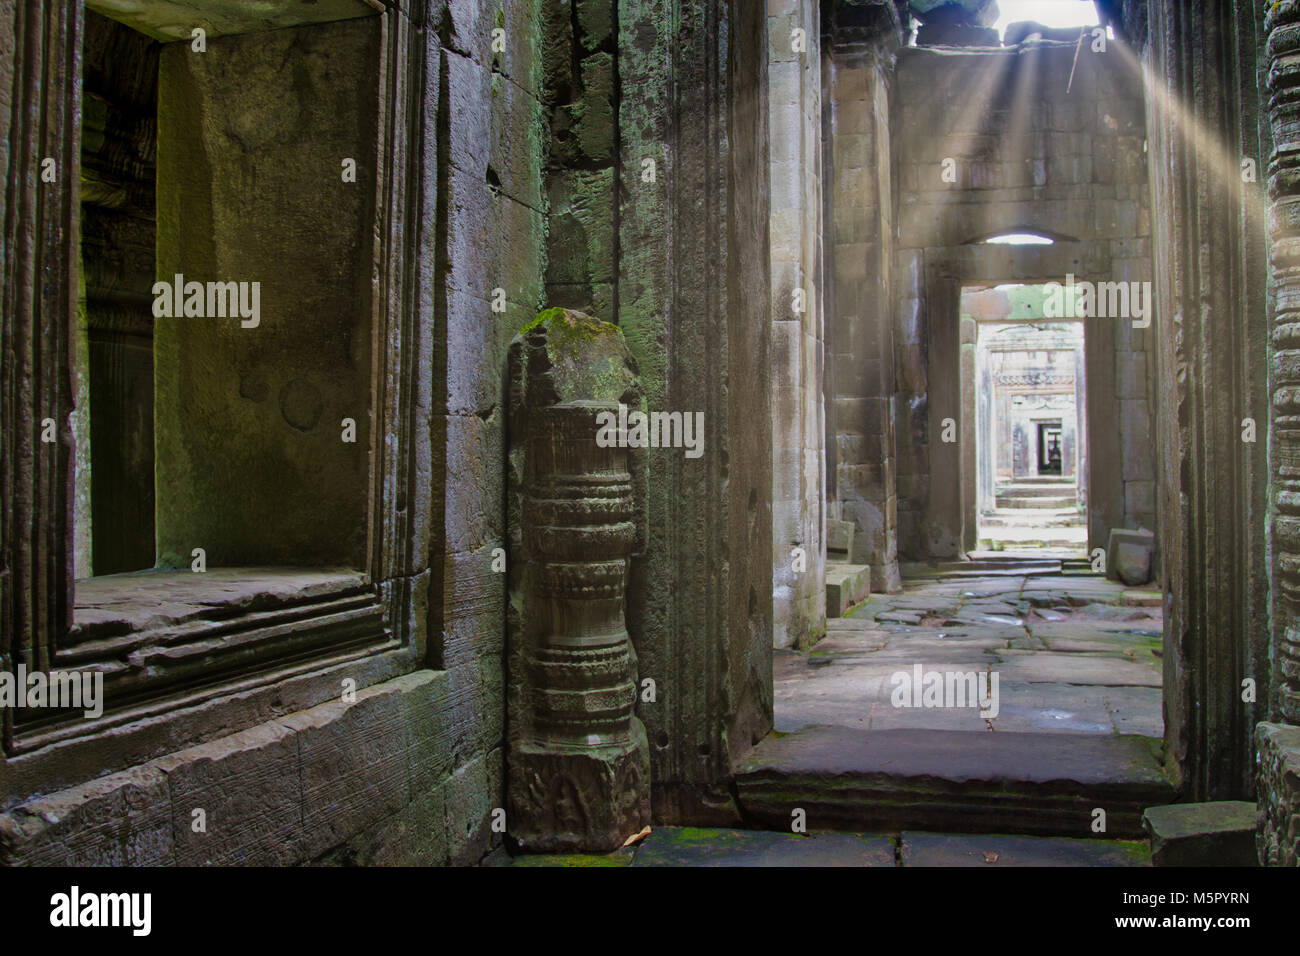 Sun Rays illuminate a passageway at Angkor Was, a UN World Heritage site in Cambodia. - Stock Image